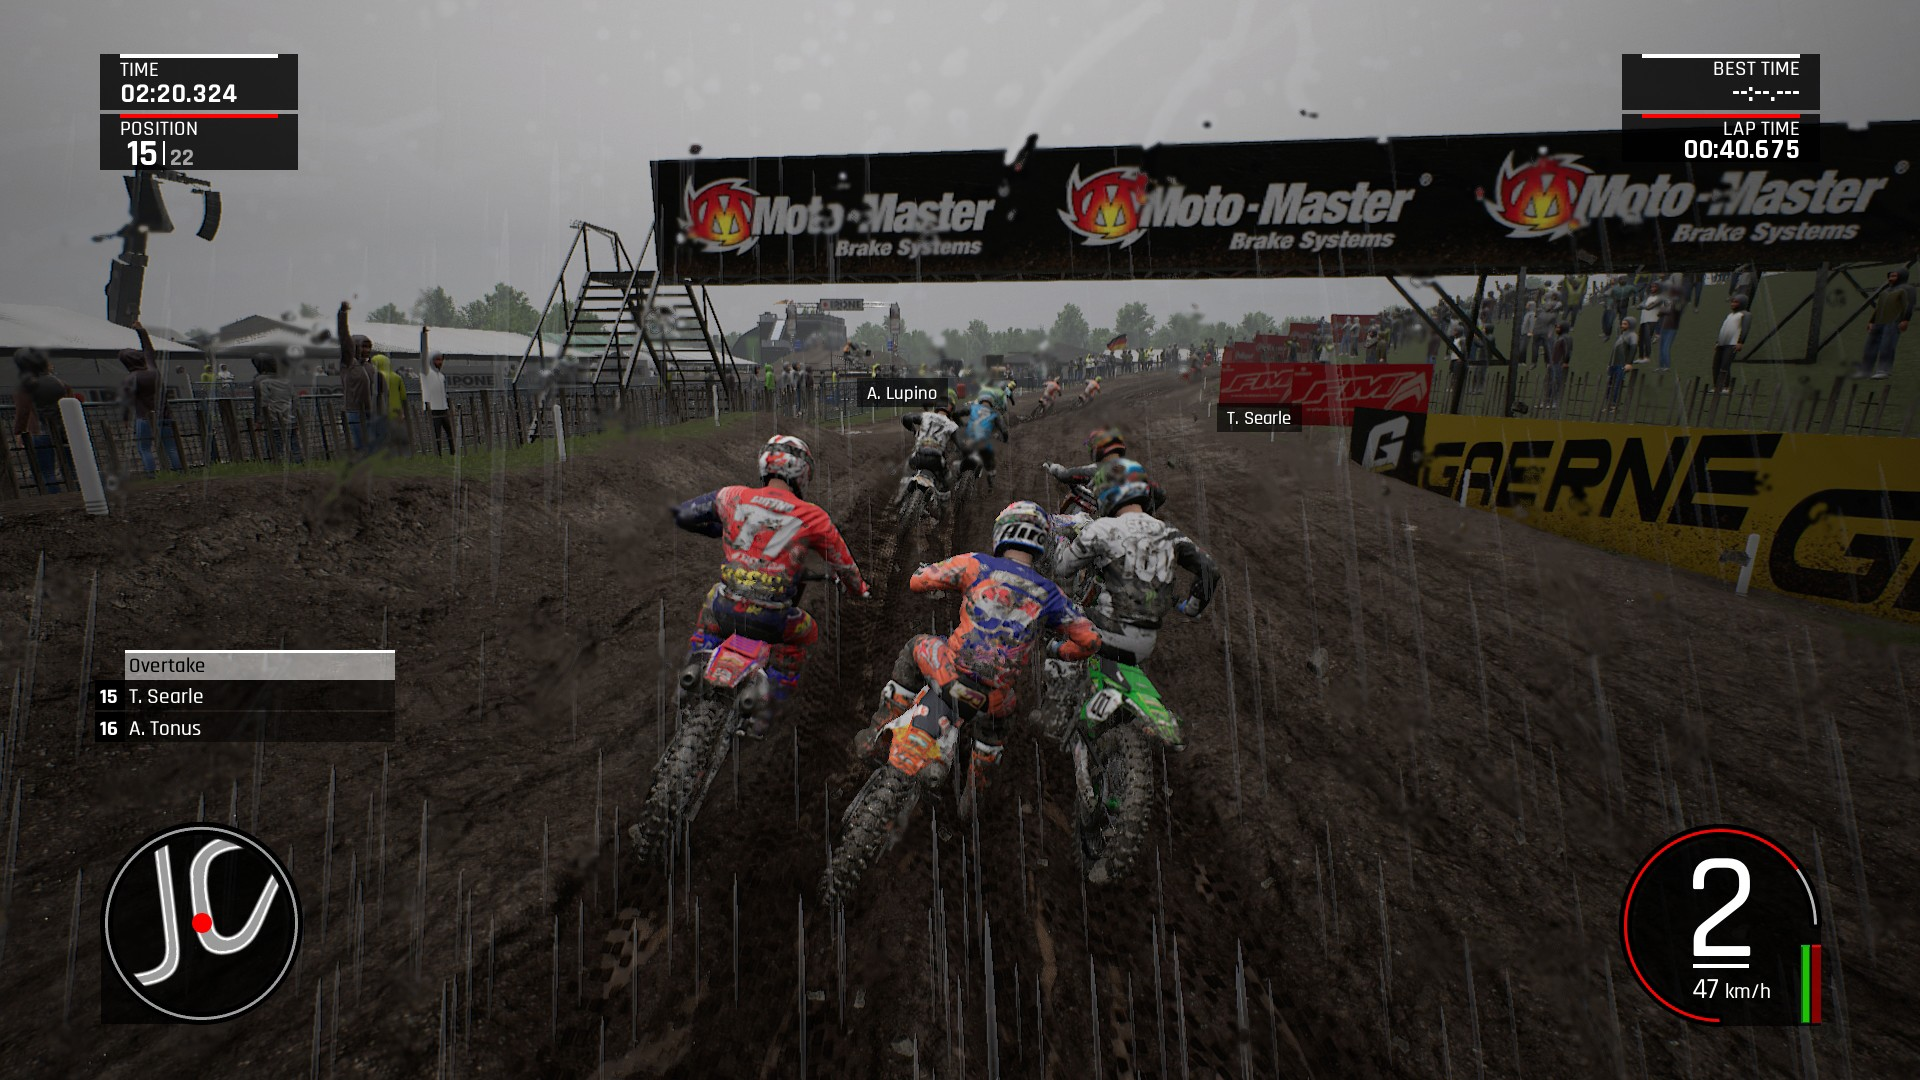 Buy Mxgp Pro Steam Game Ps4 Mx Gp 2 The Official Video Of Motocross Championship Is Back Download And Live Entire Experience As A